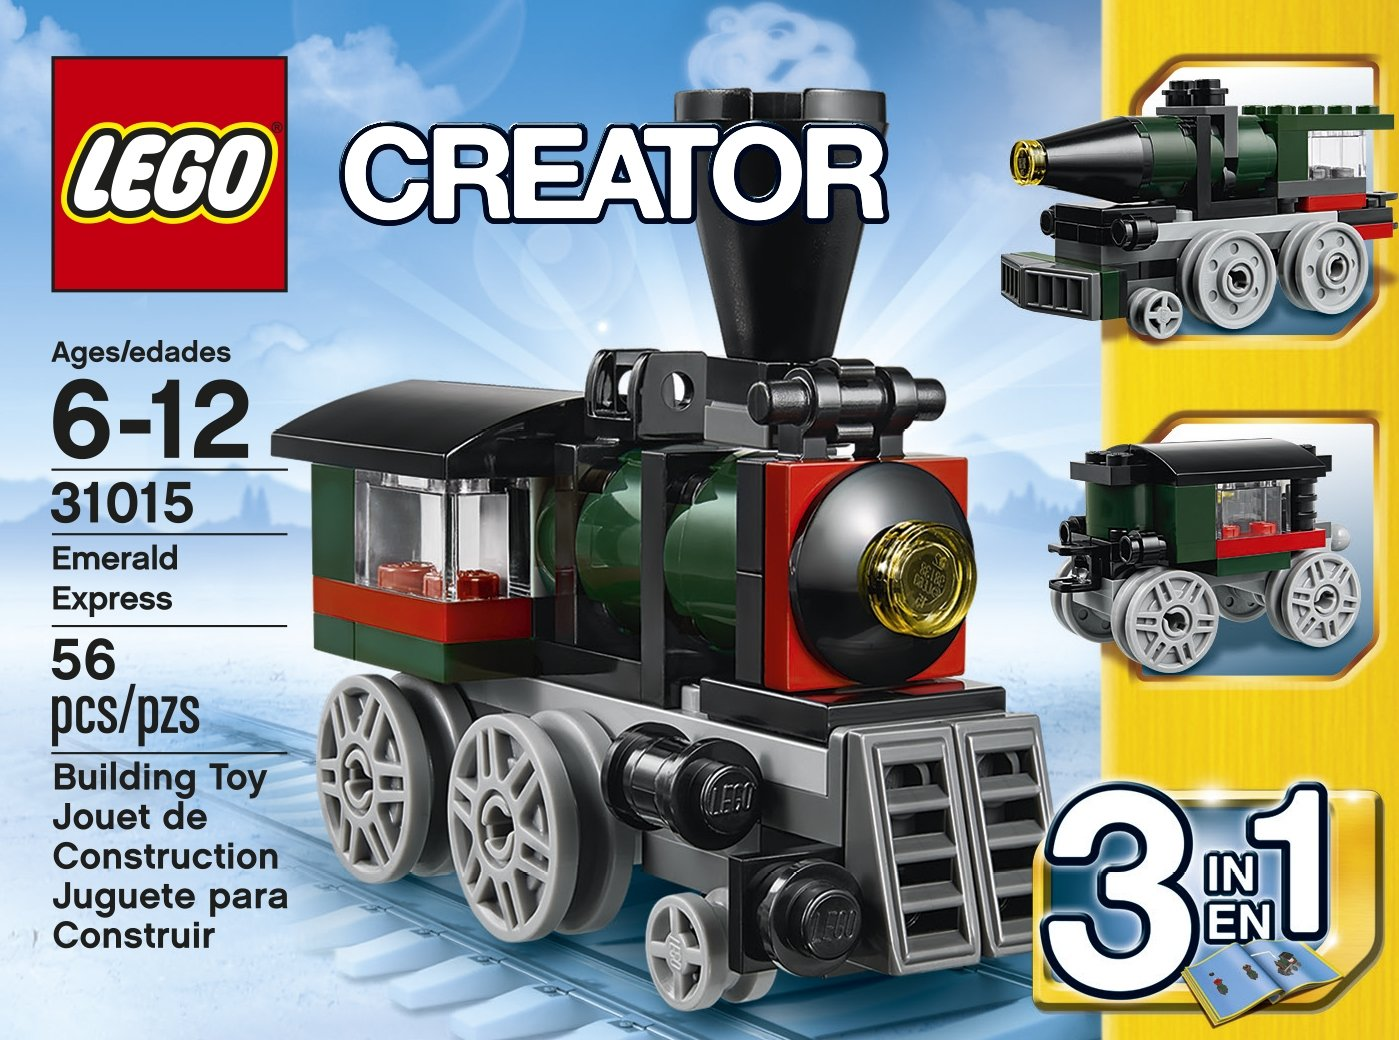 Amazon Lego Creator 31015 Emerald Express Discontinued By